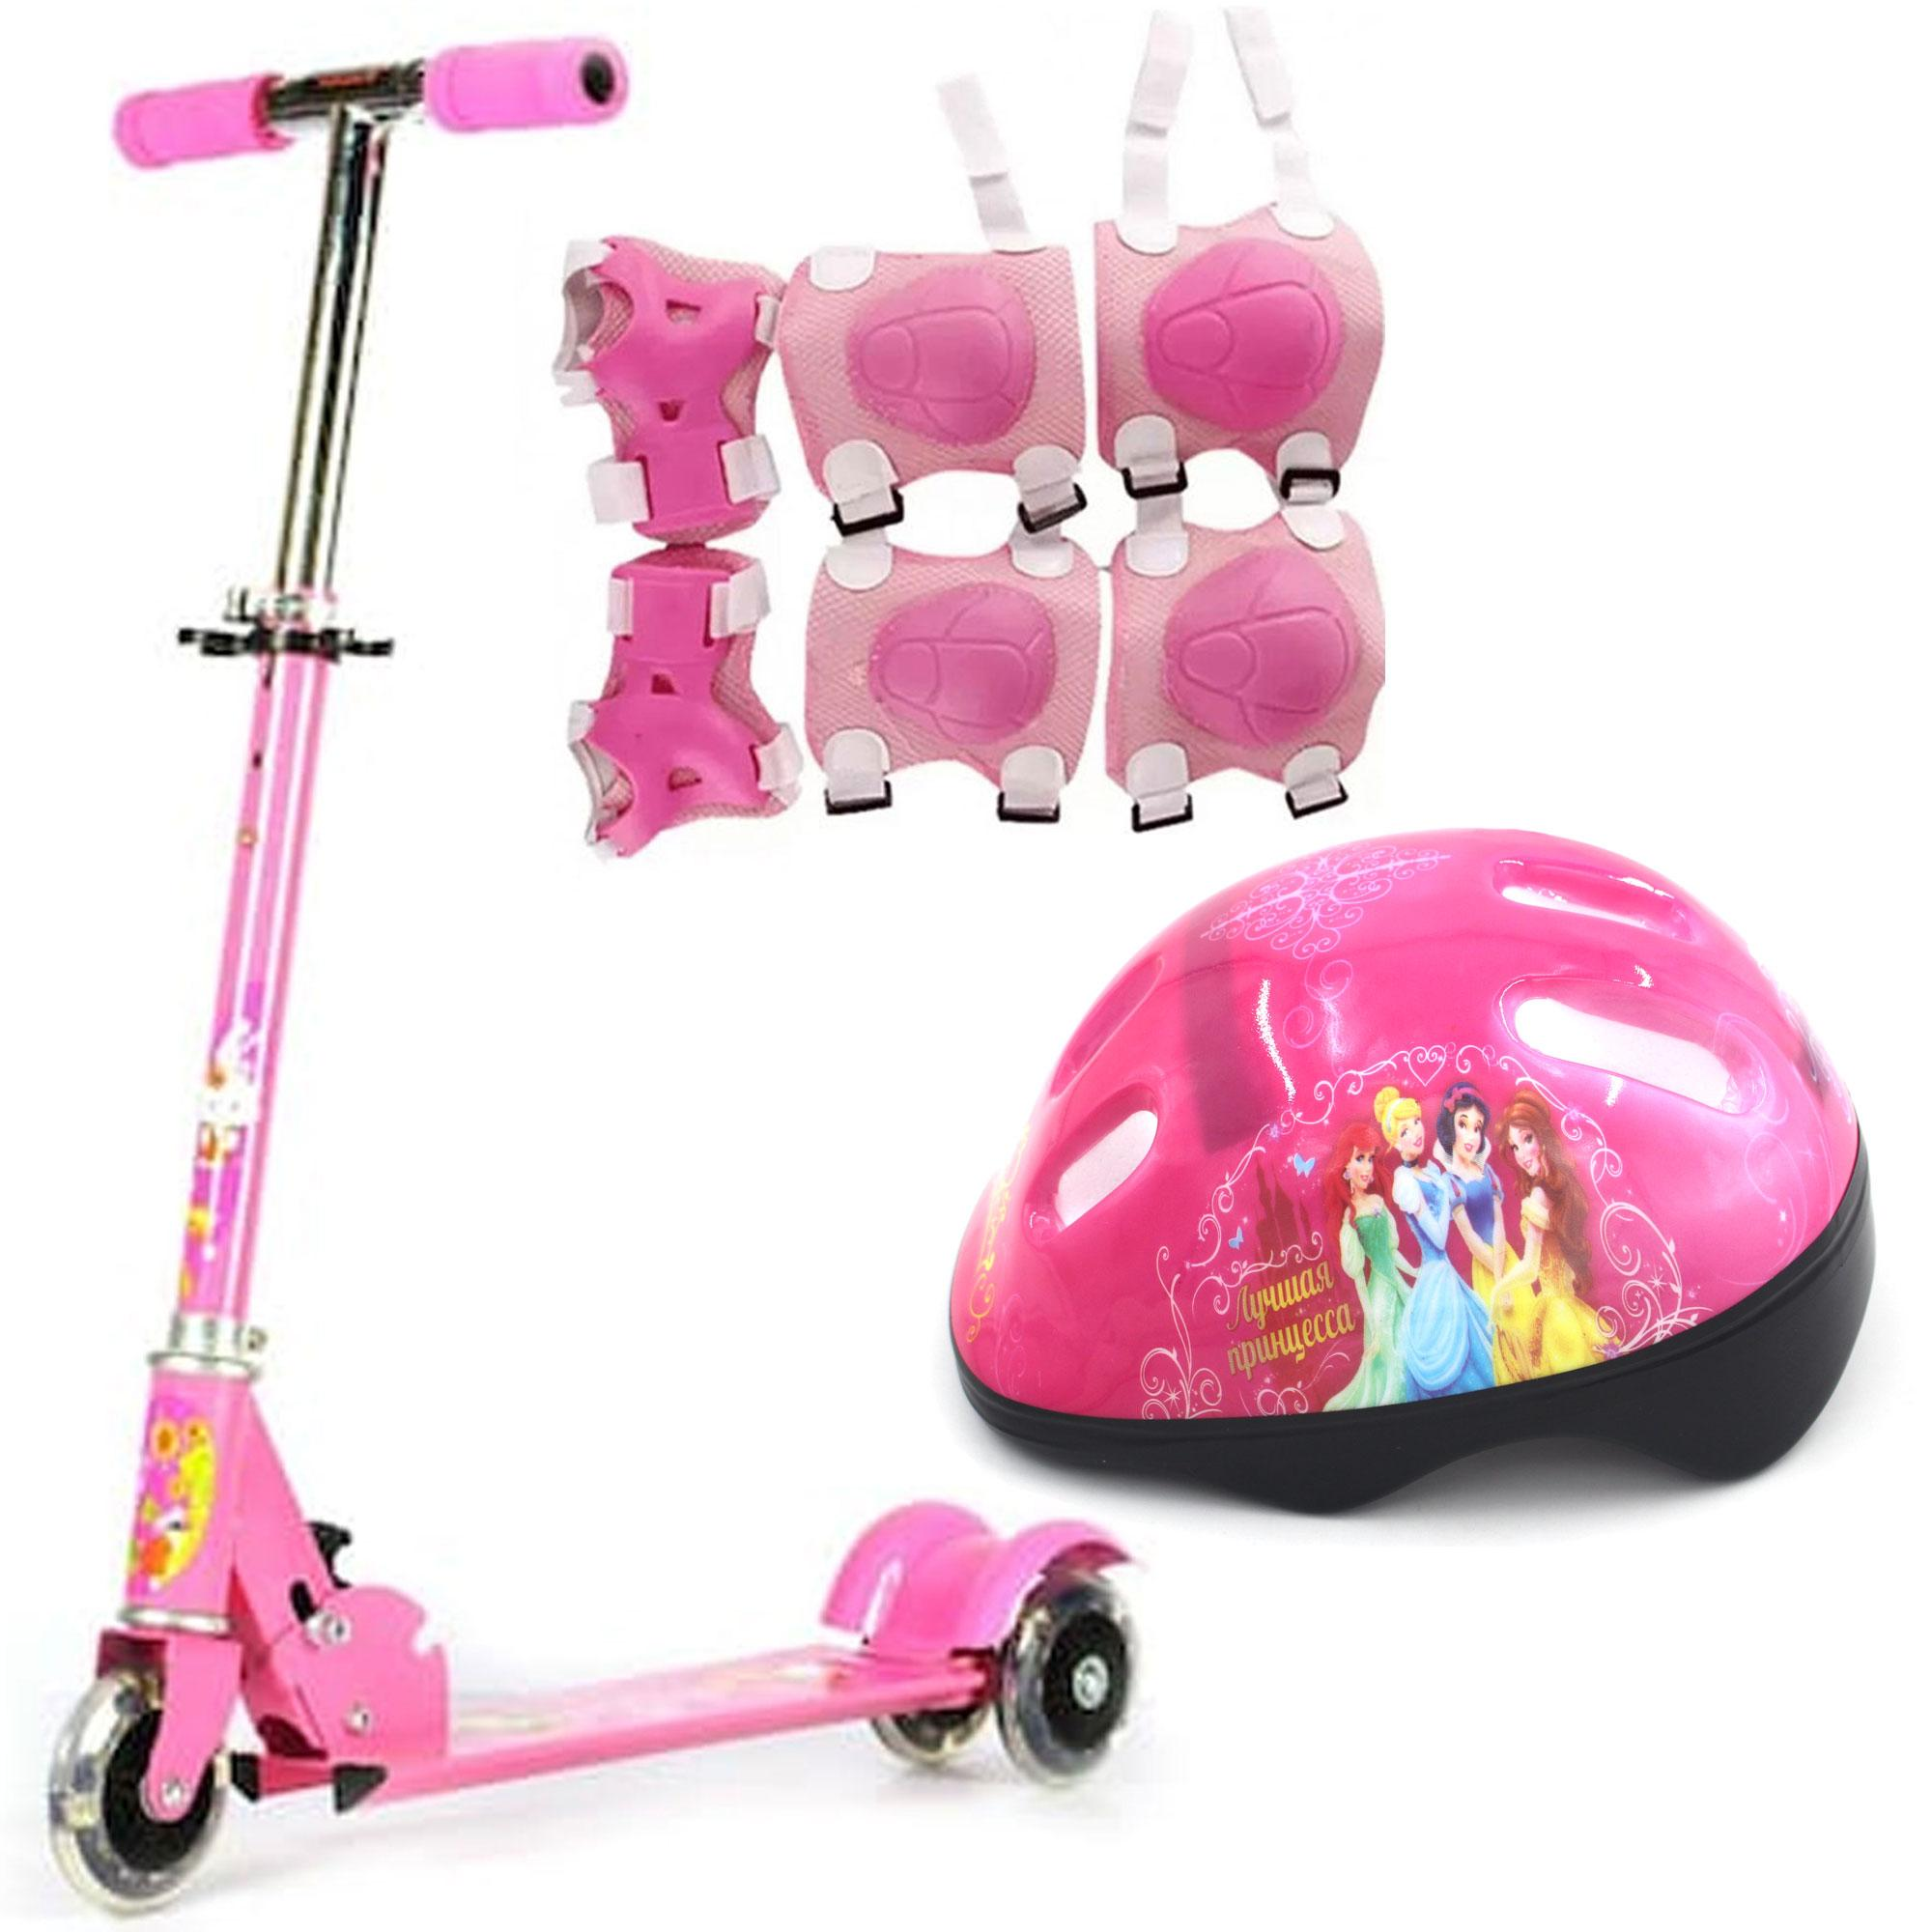 Little Jr 3 Wheels Scooter (pink) With Protective Pads For Cycling 6-Piece Set (pink) And Kids Bicycle Helmet By Gonzalez General Merchandise.